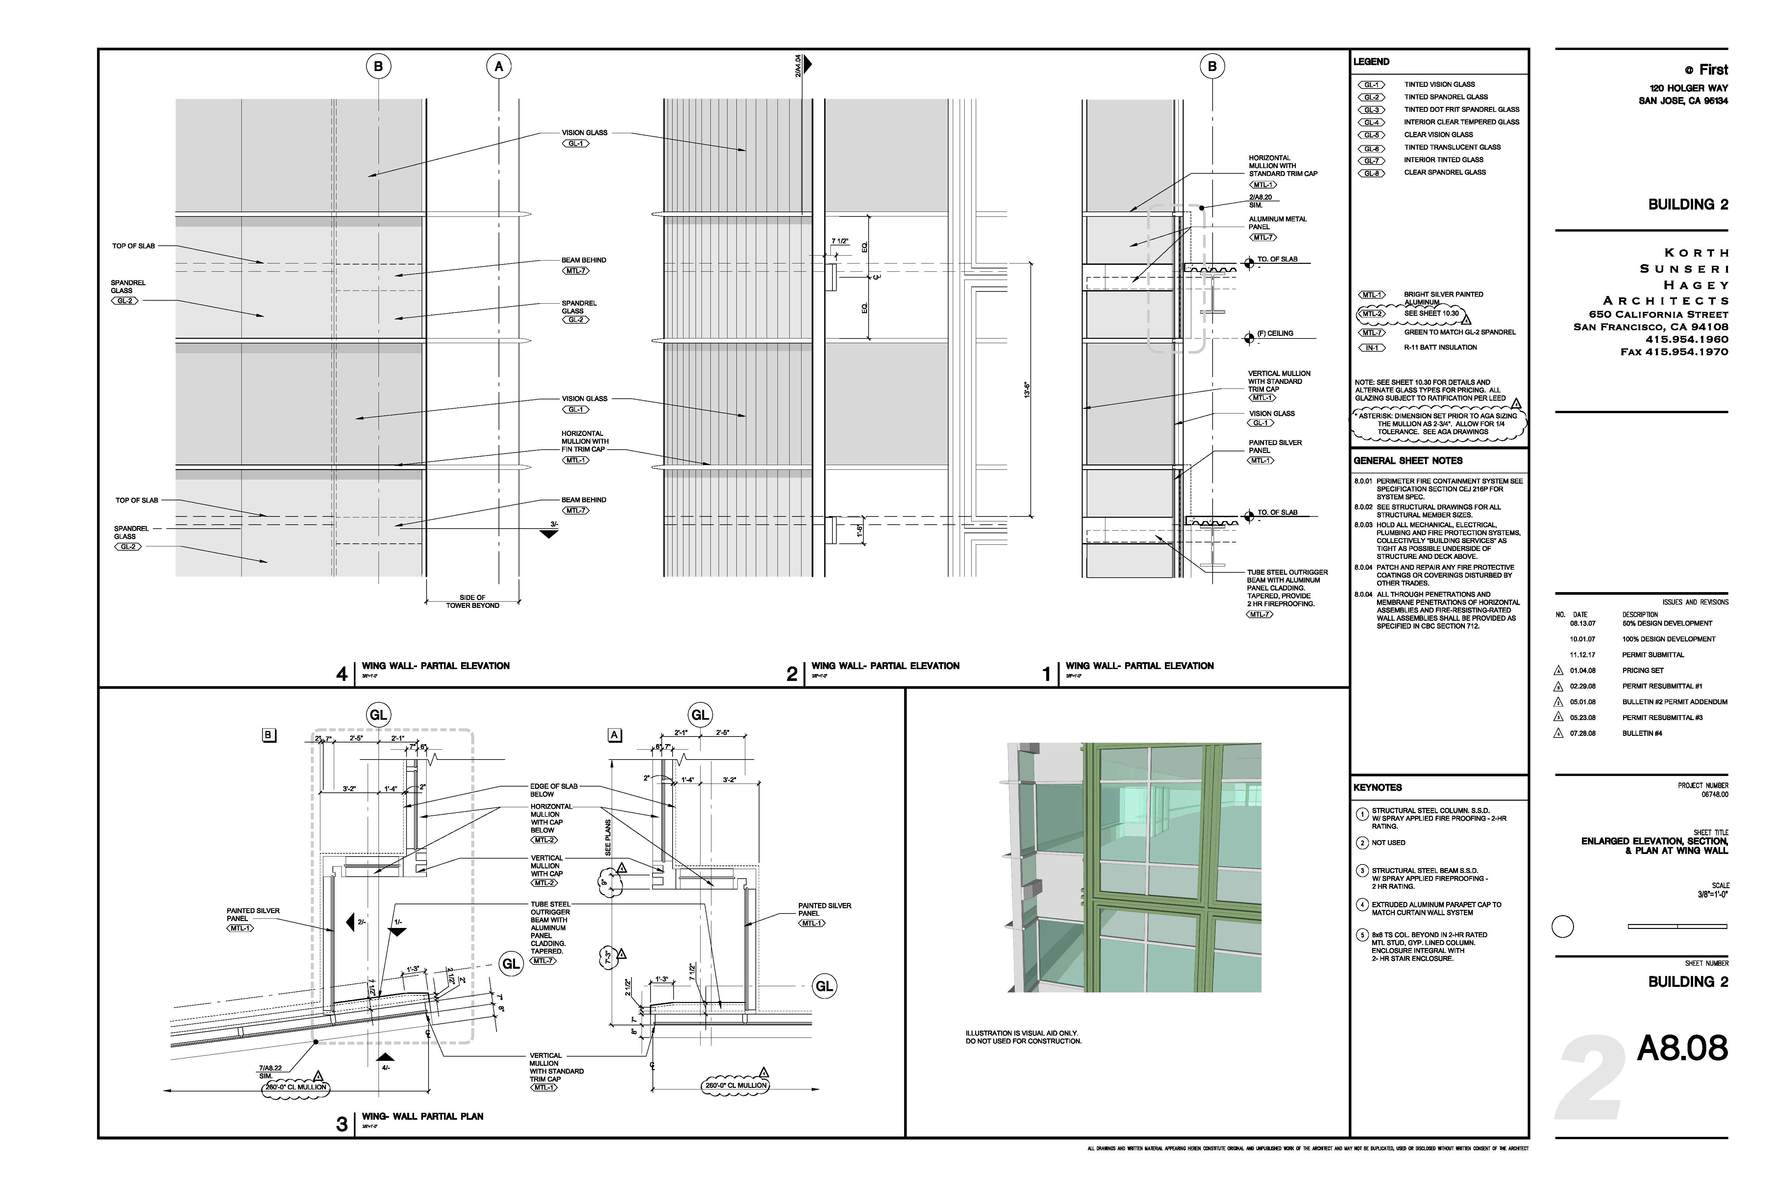 Construction Documents Enlarged Plan, Elevation, Section